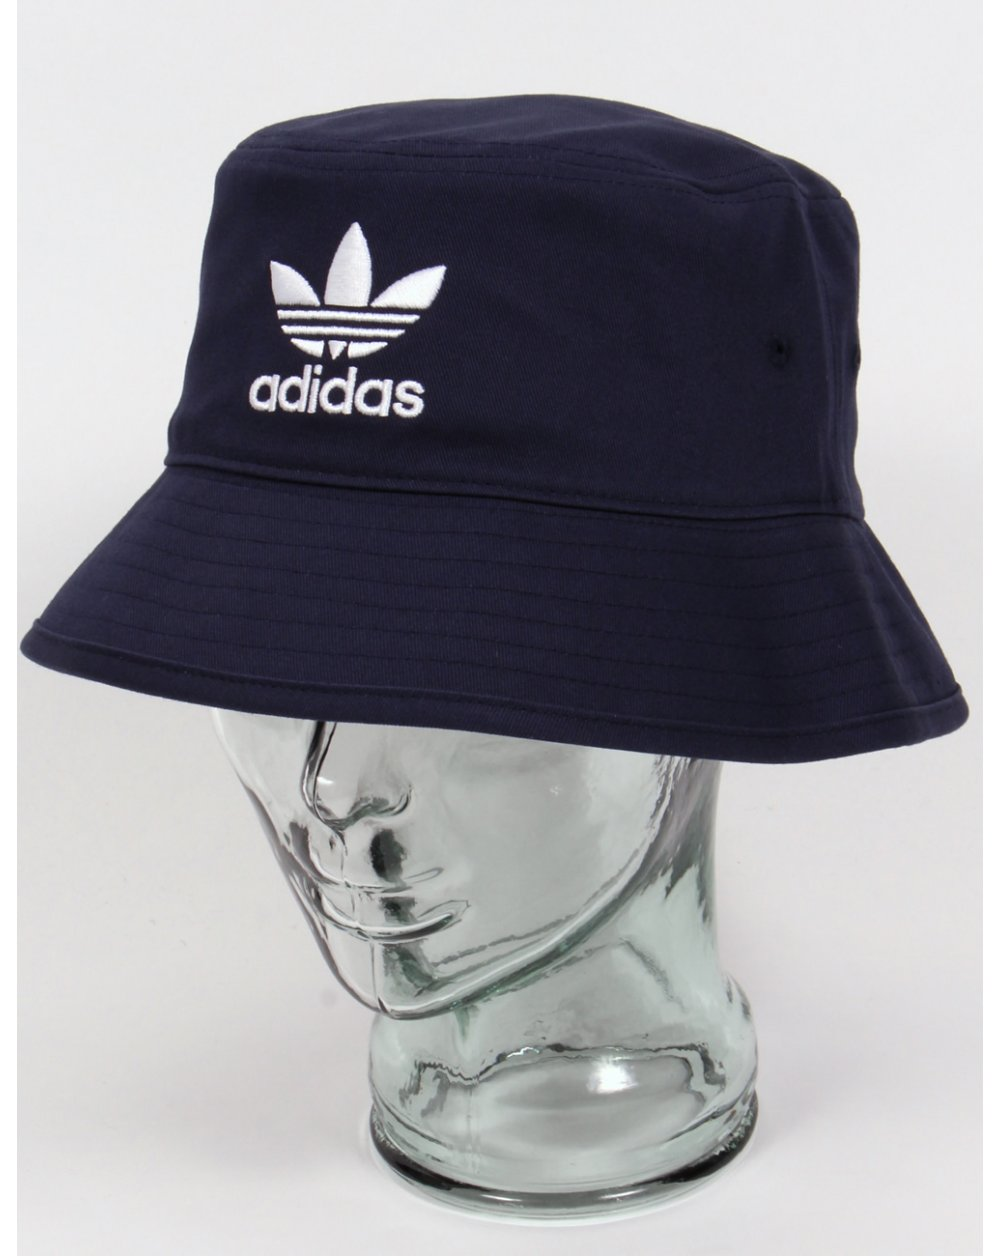 37b29c4bc48 adidas Originals Adidas Originals Bucket Hat With Trefoil Navy